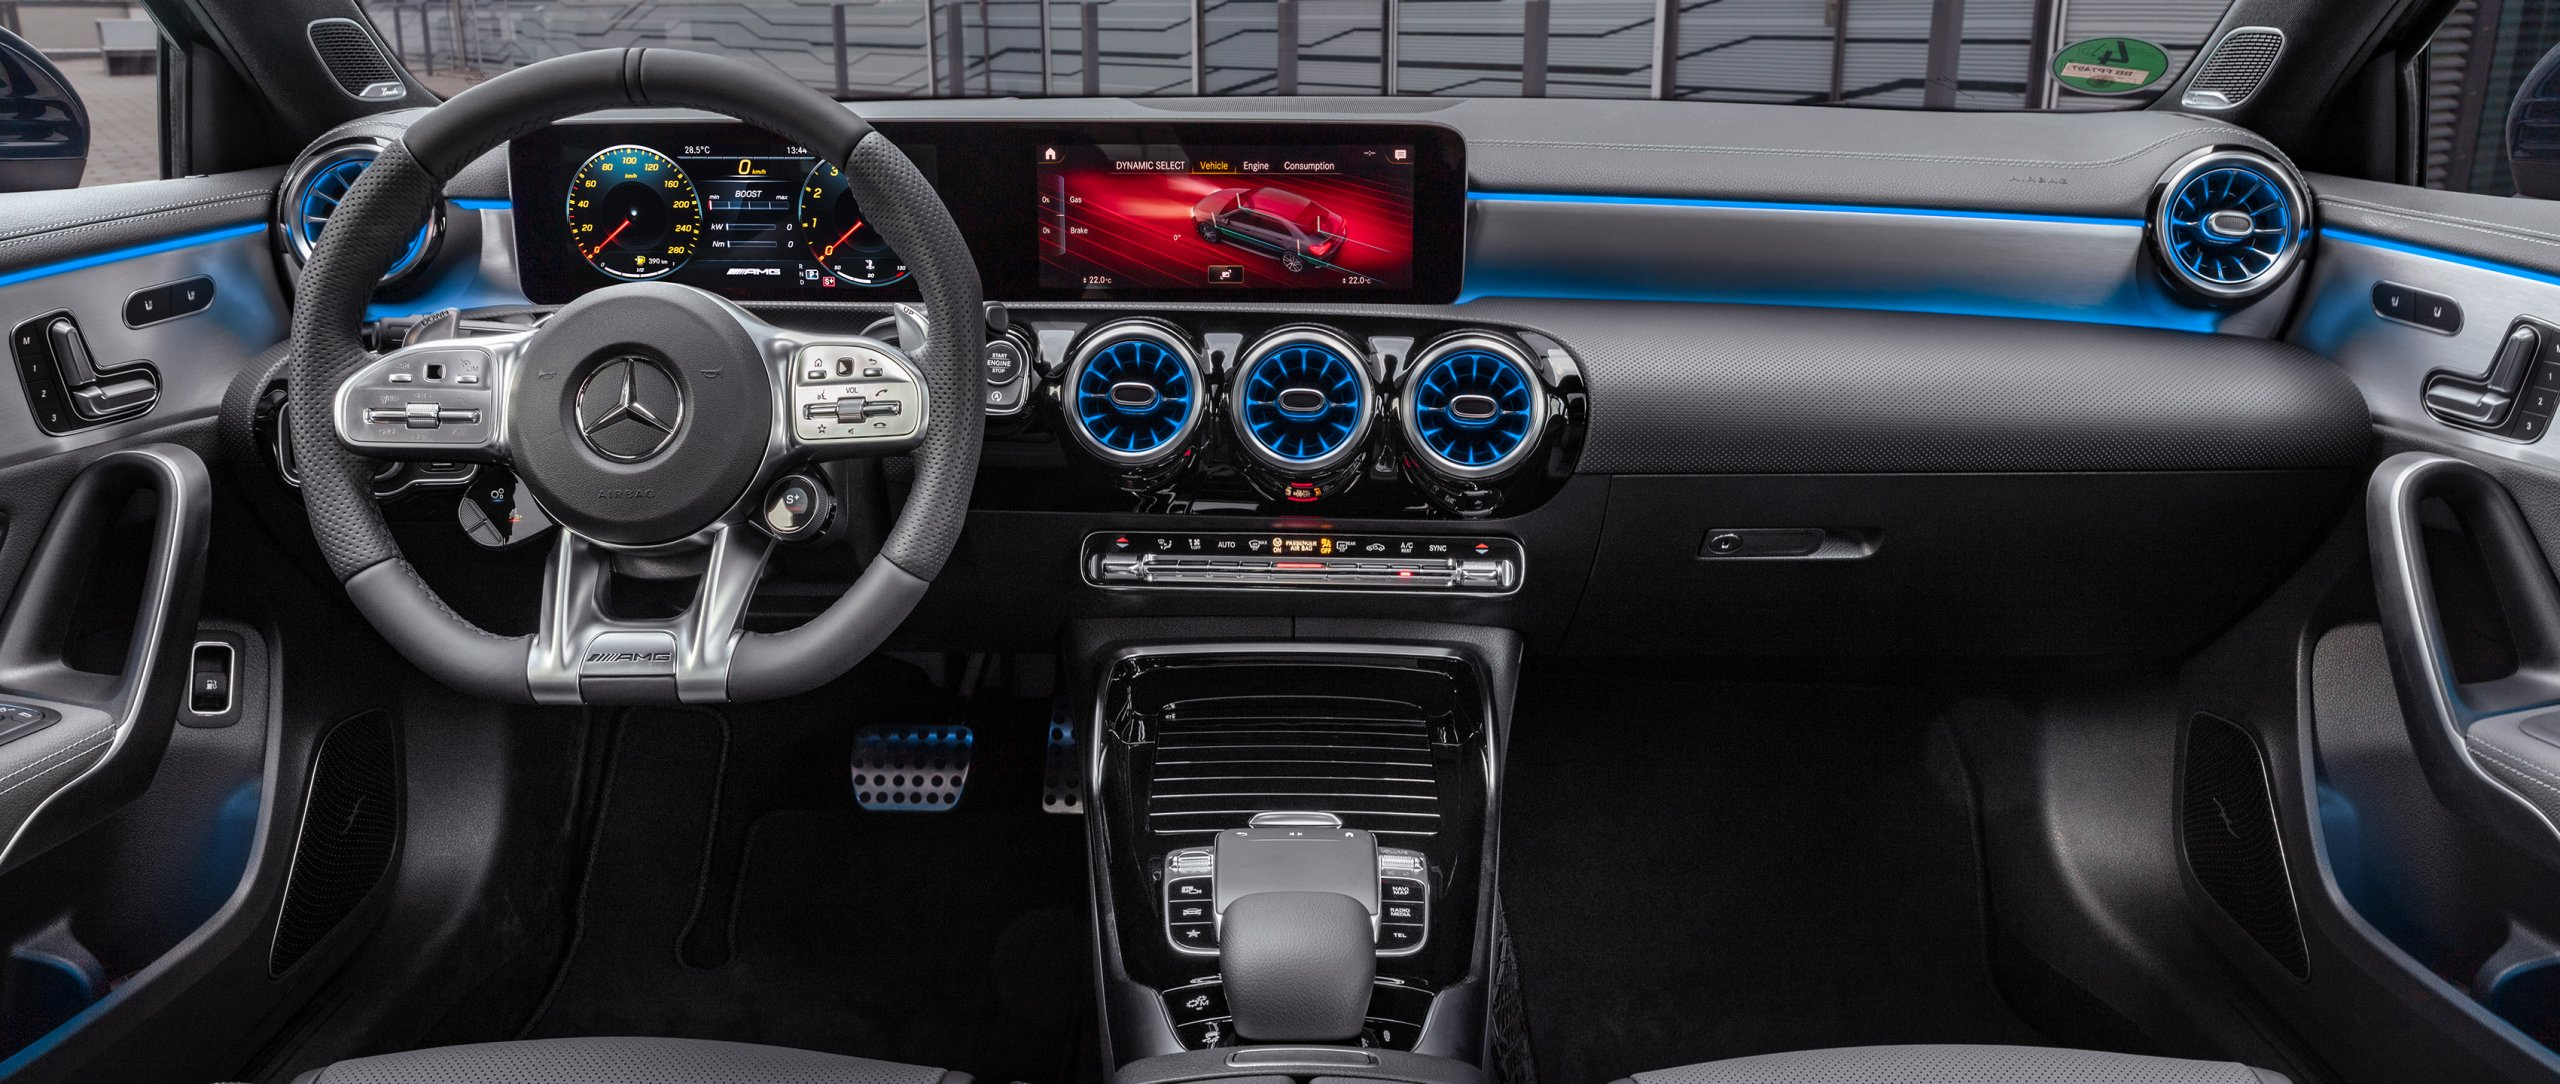 The interior of the new 2019 Mercedes-AMG A 35 4MATIC Saloon (V 177).